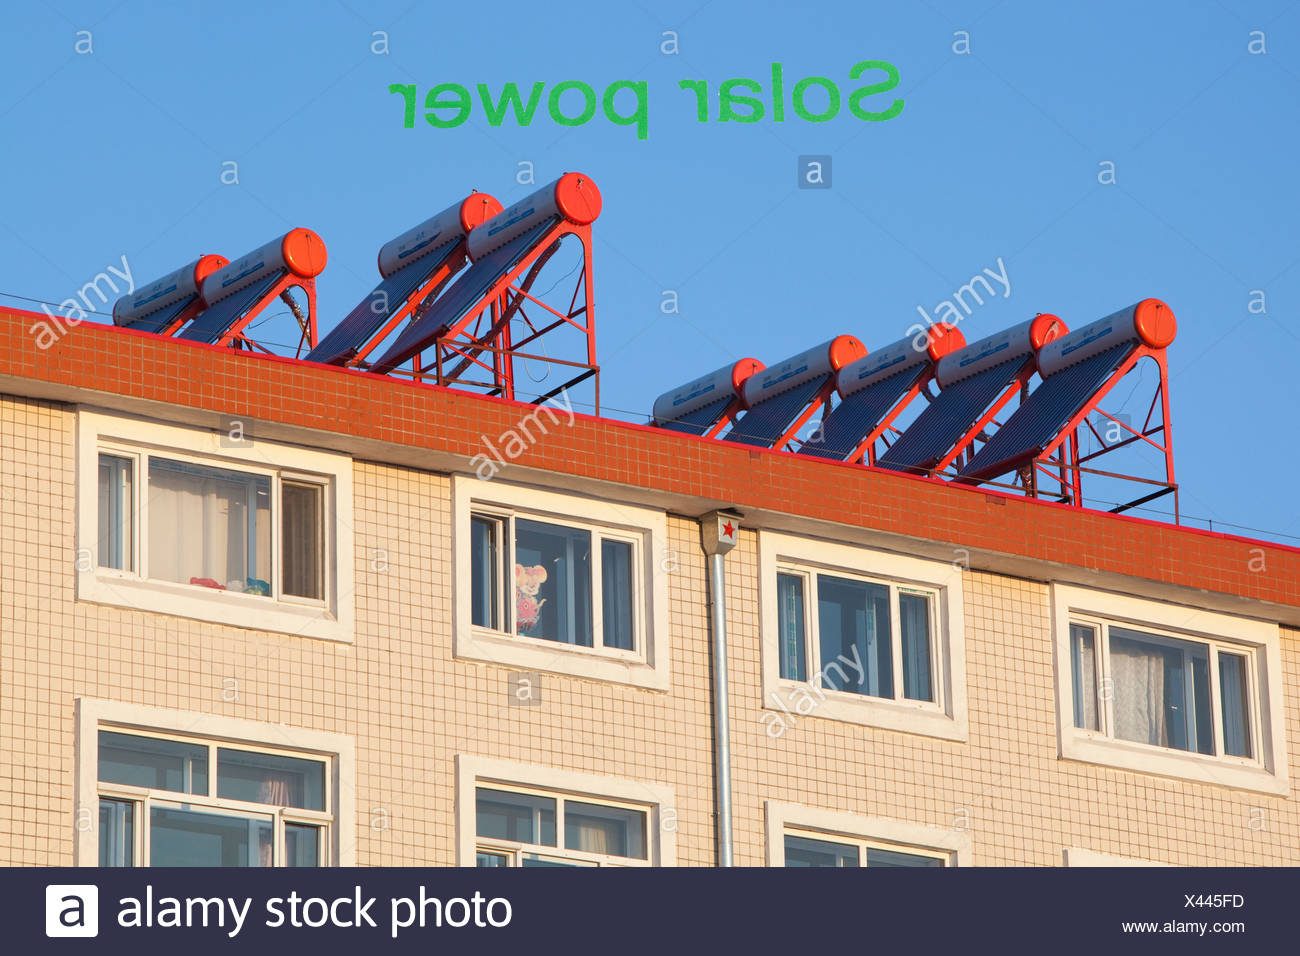 Soalr water heaters on house roof in China. - Stock Image